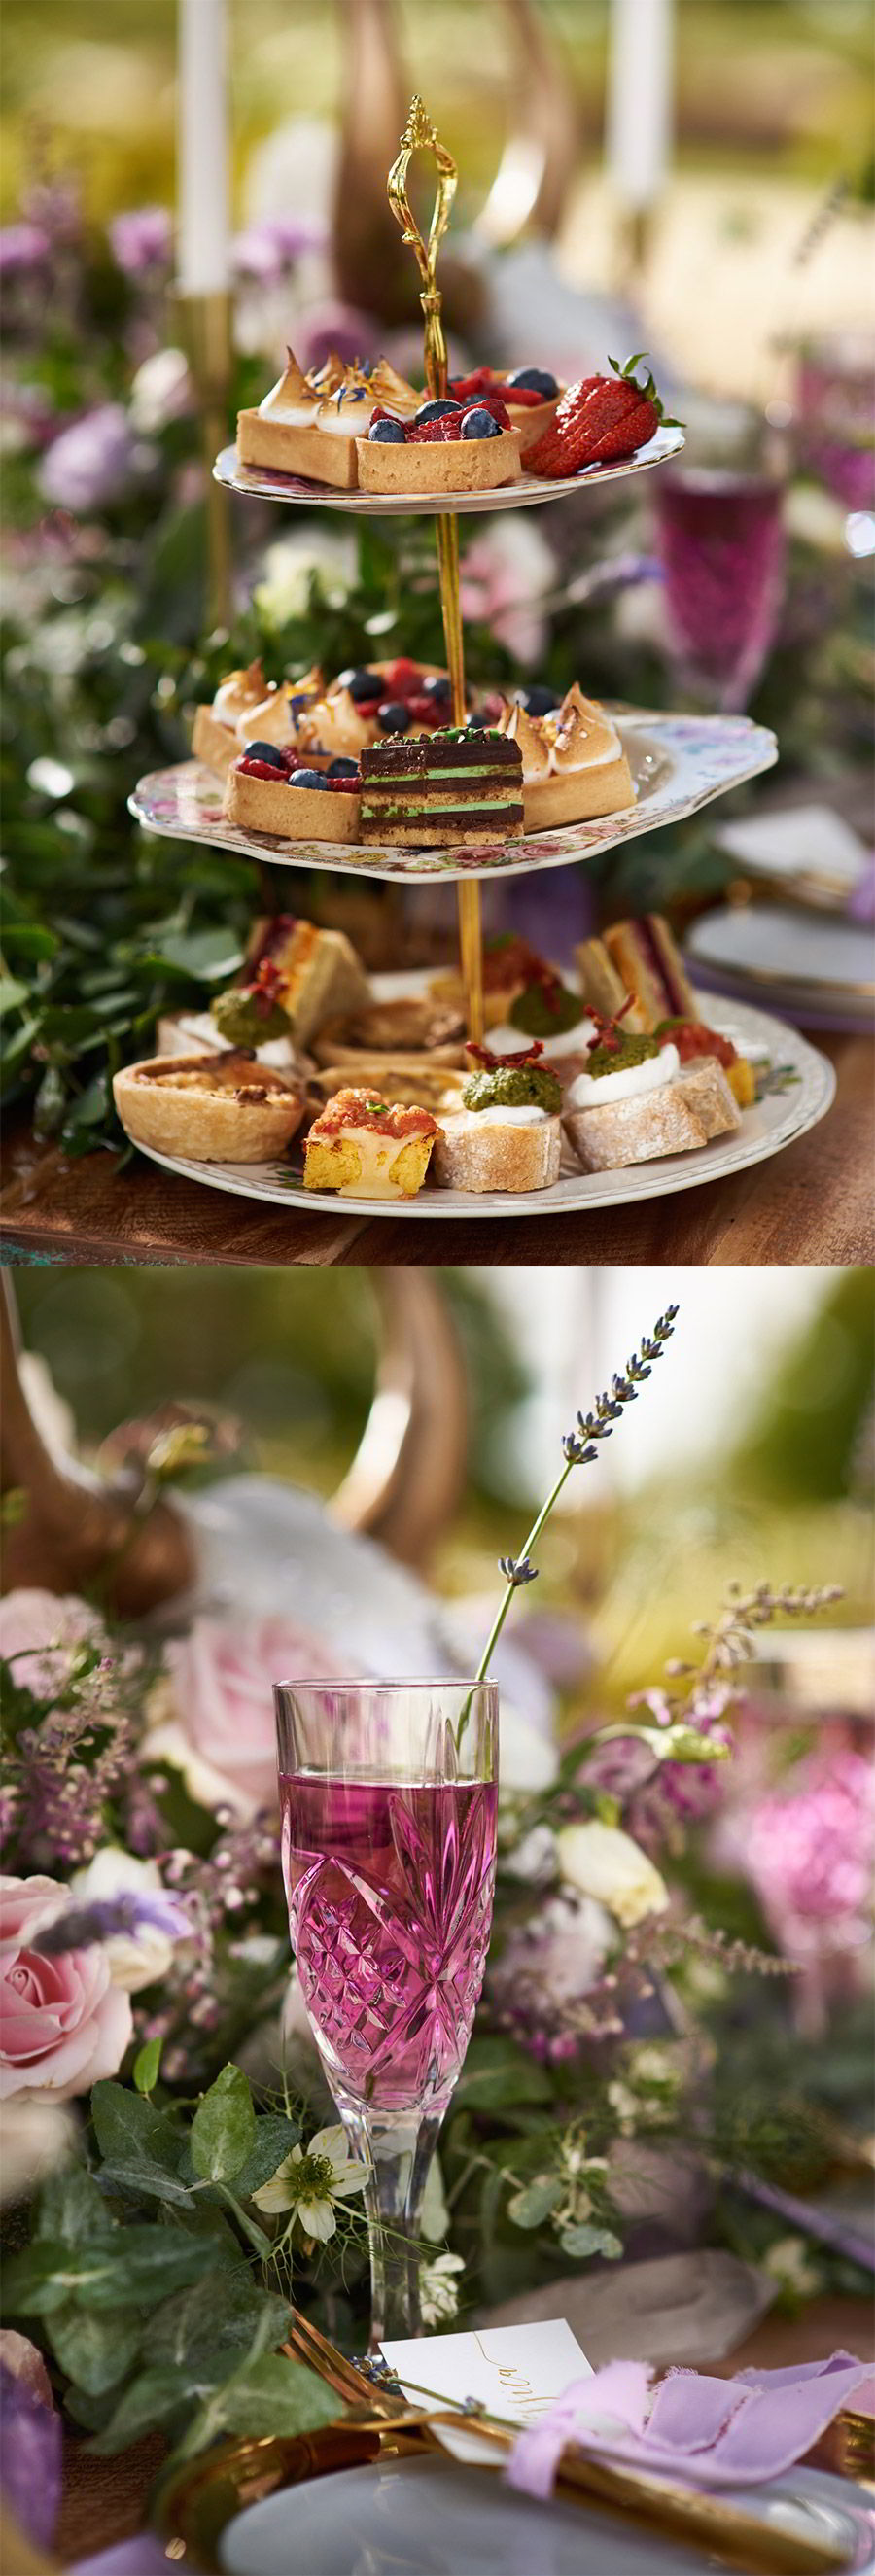 lavender field wedding photo shoot adorn invitations purple gold boho luxe inspiration